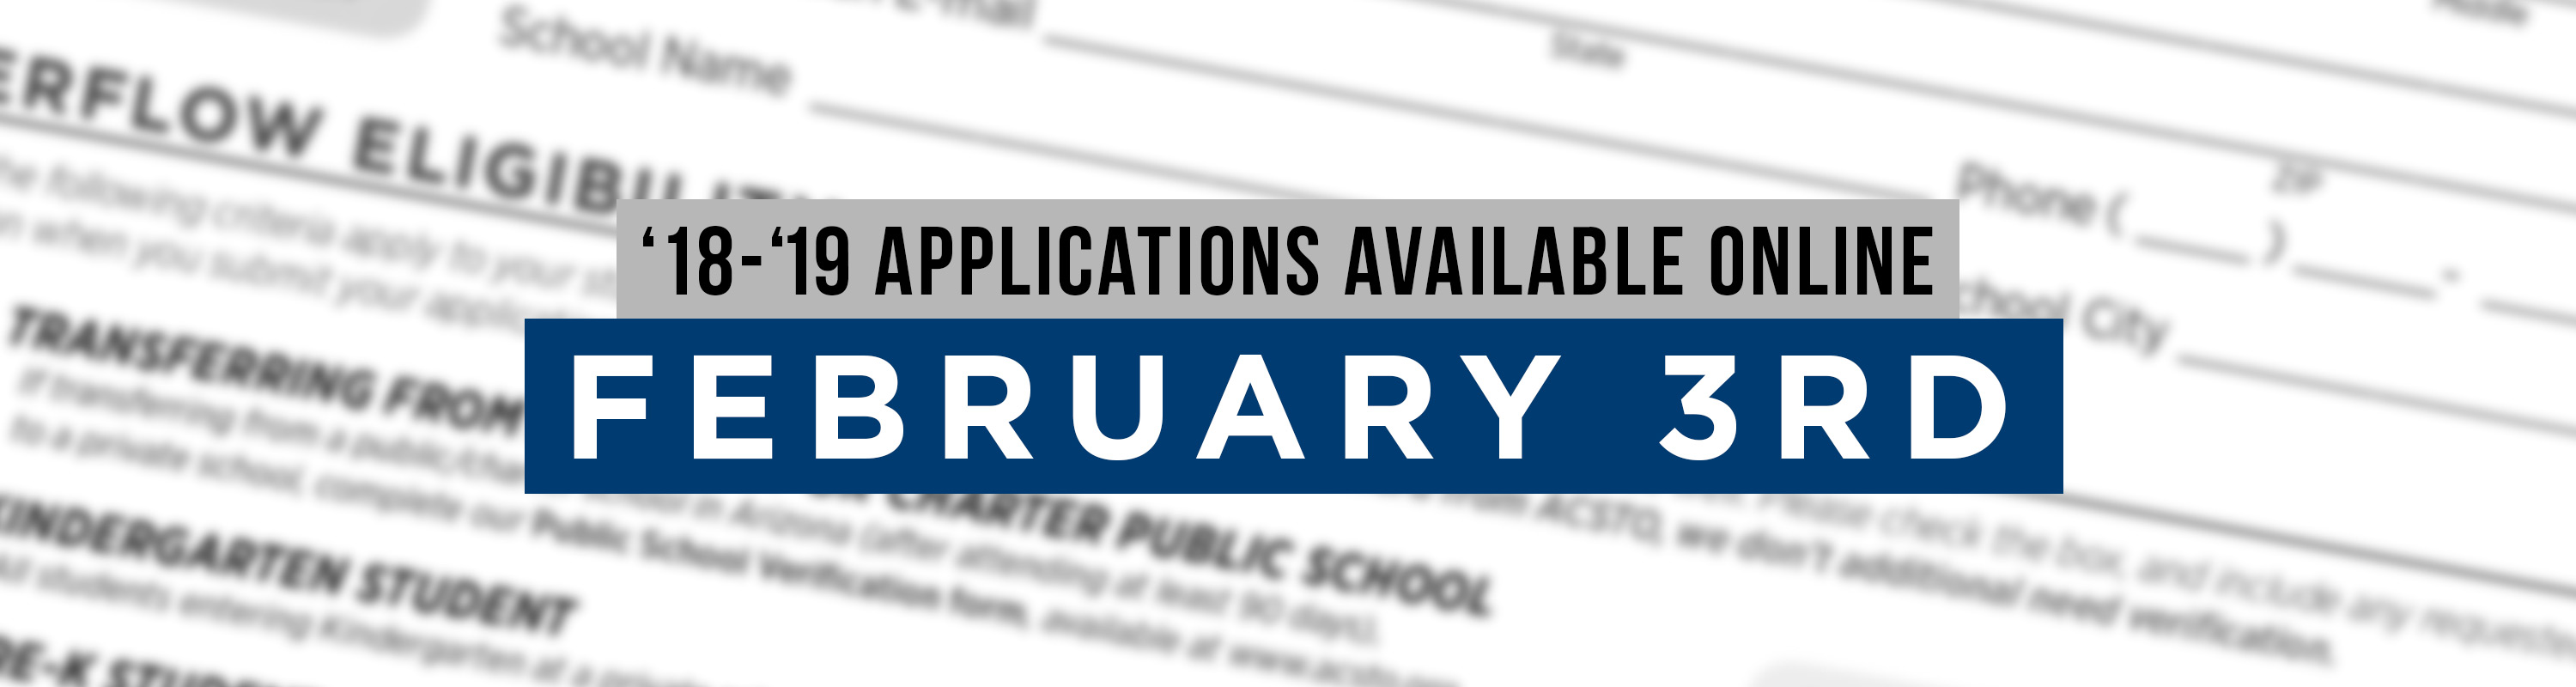 '18-'19 Applications Available Online February 3rd